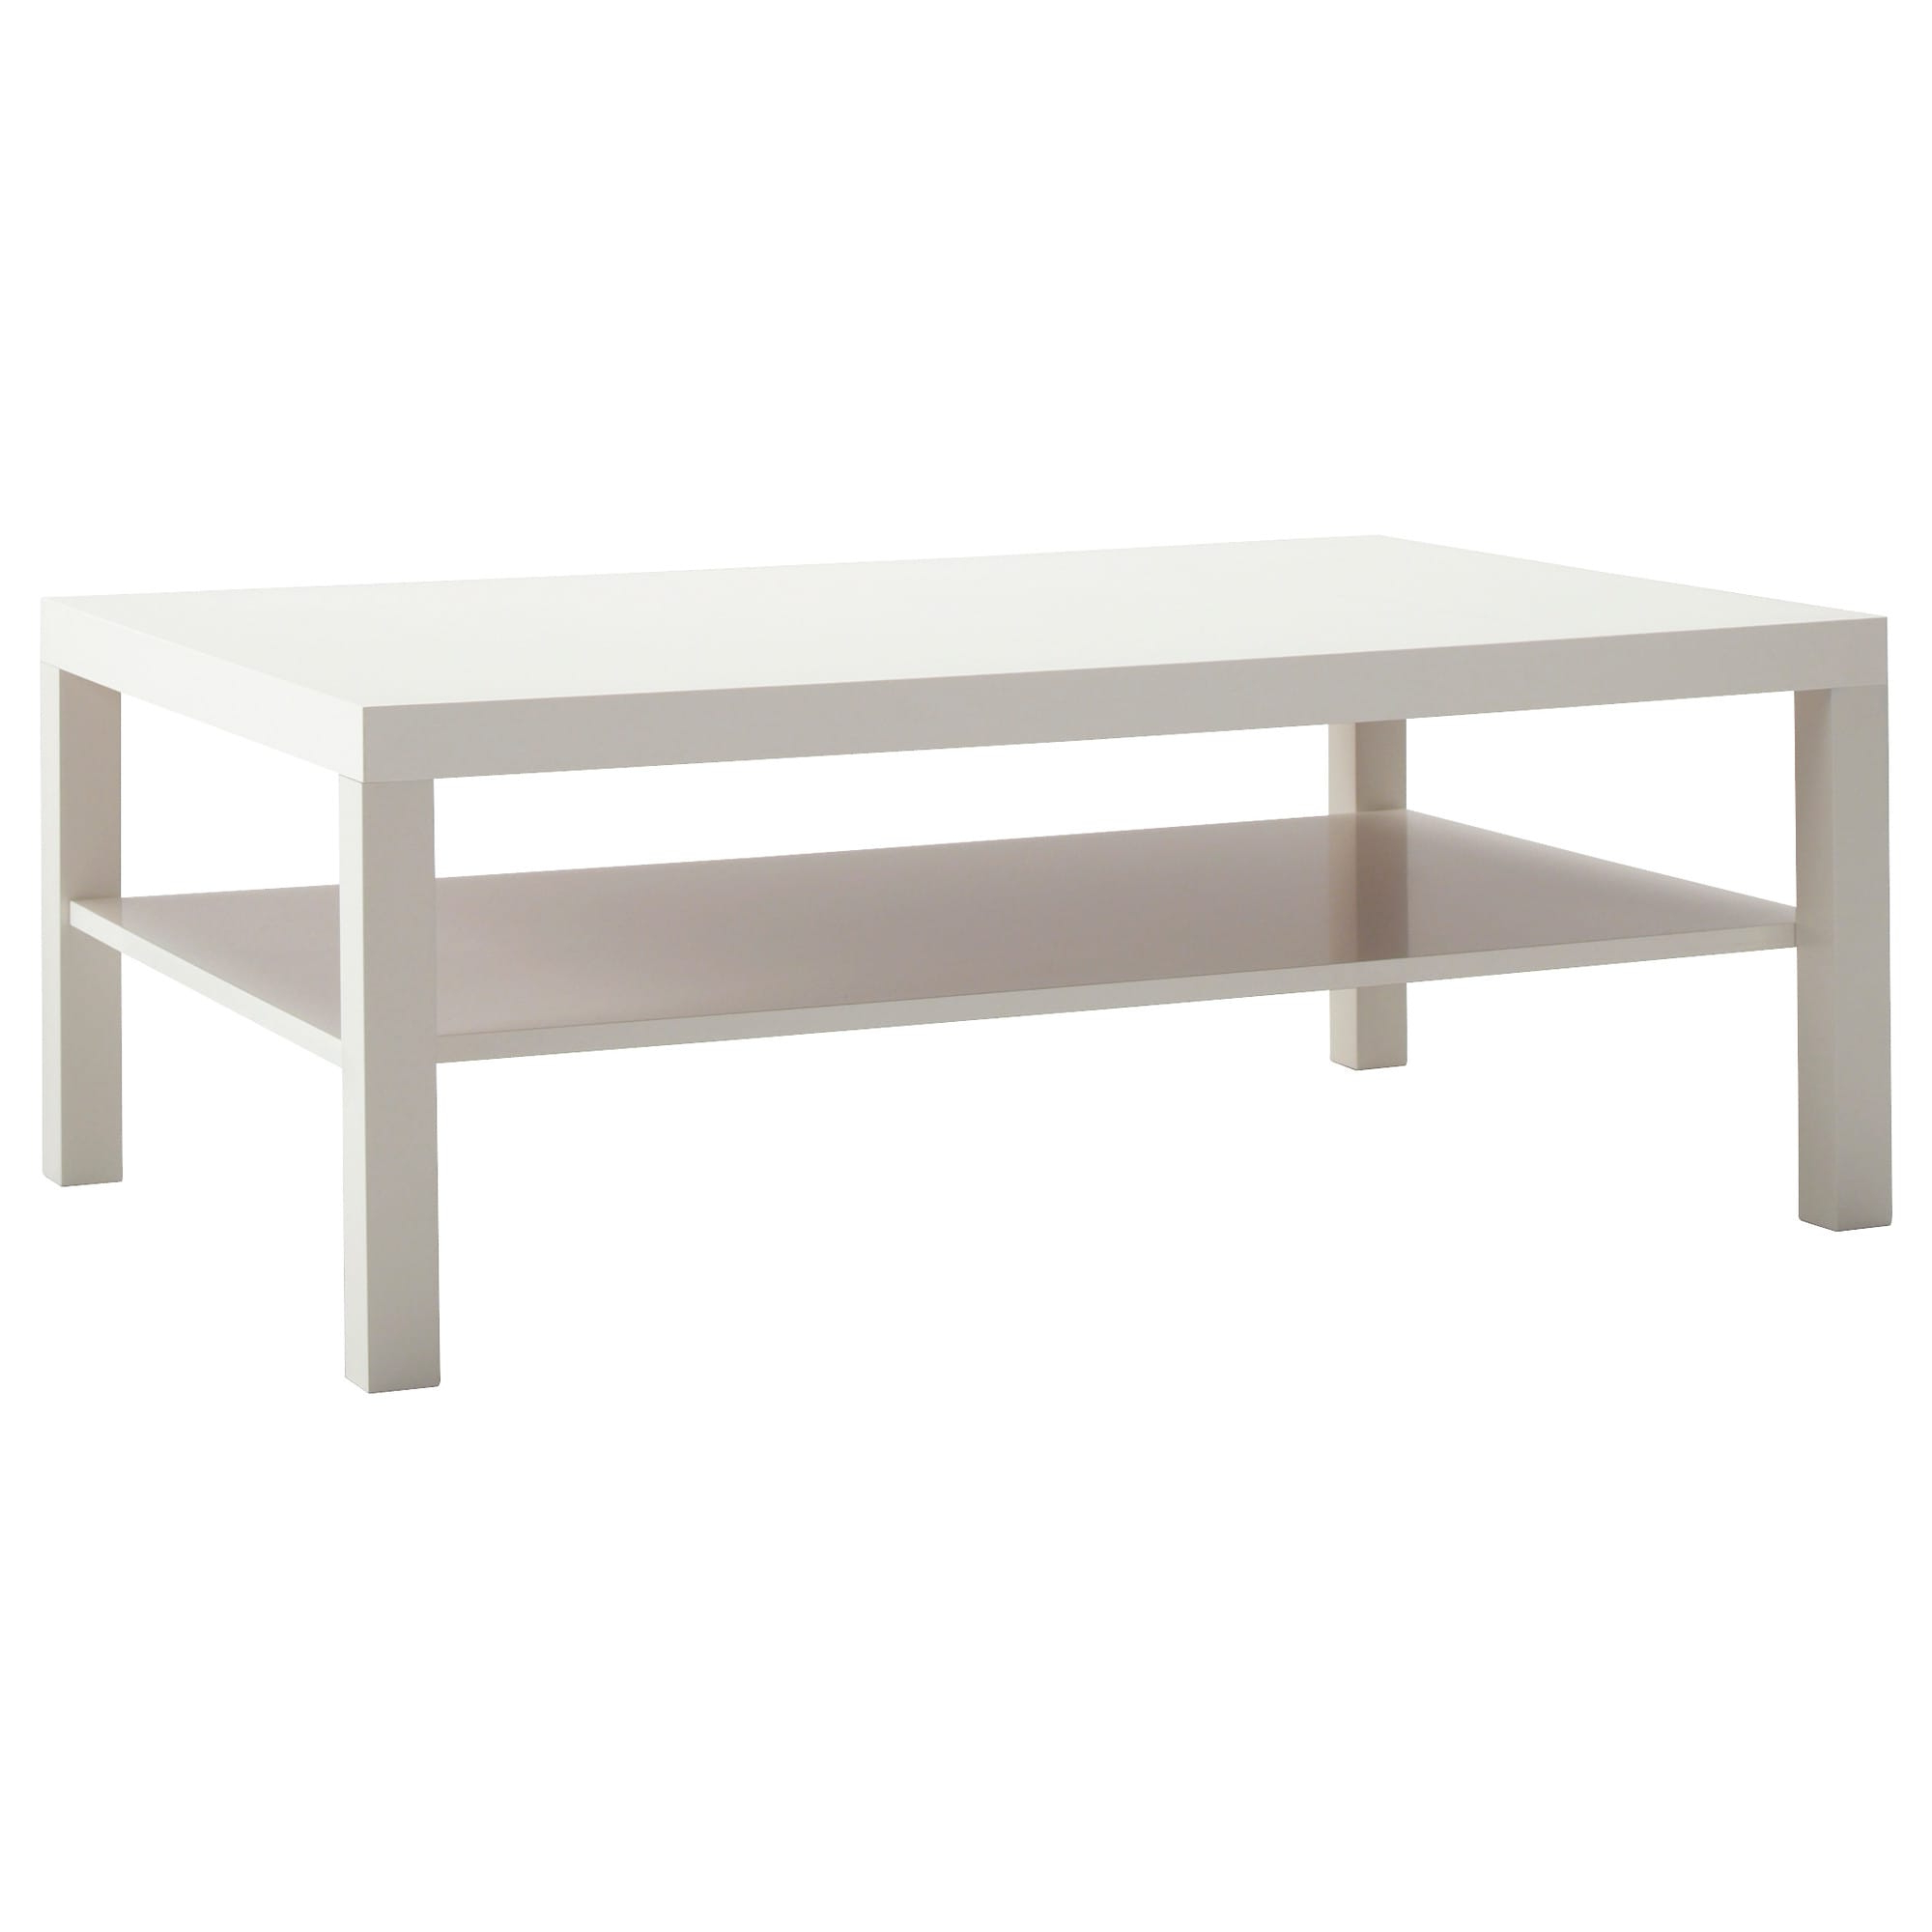 Go Cart White Rolling Coffee Tables Inside Well Known Lack Coffee Table – White – Ikea (View 11 of 20)